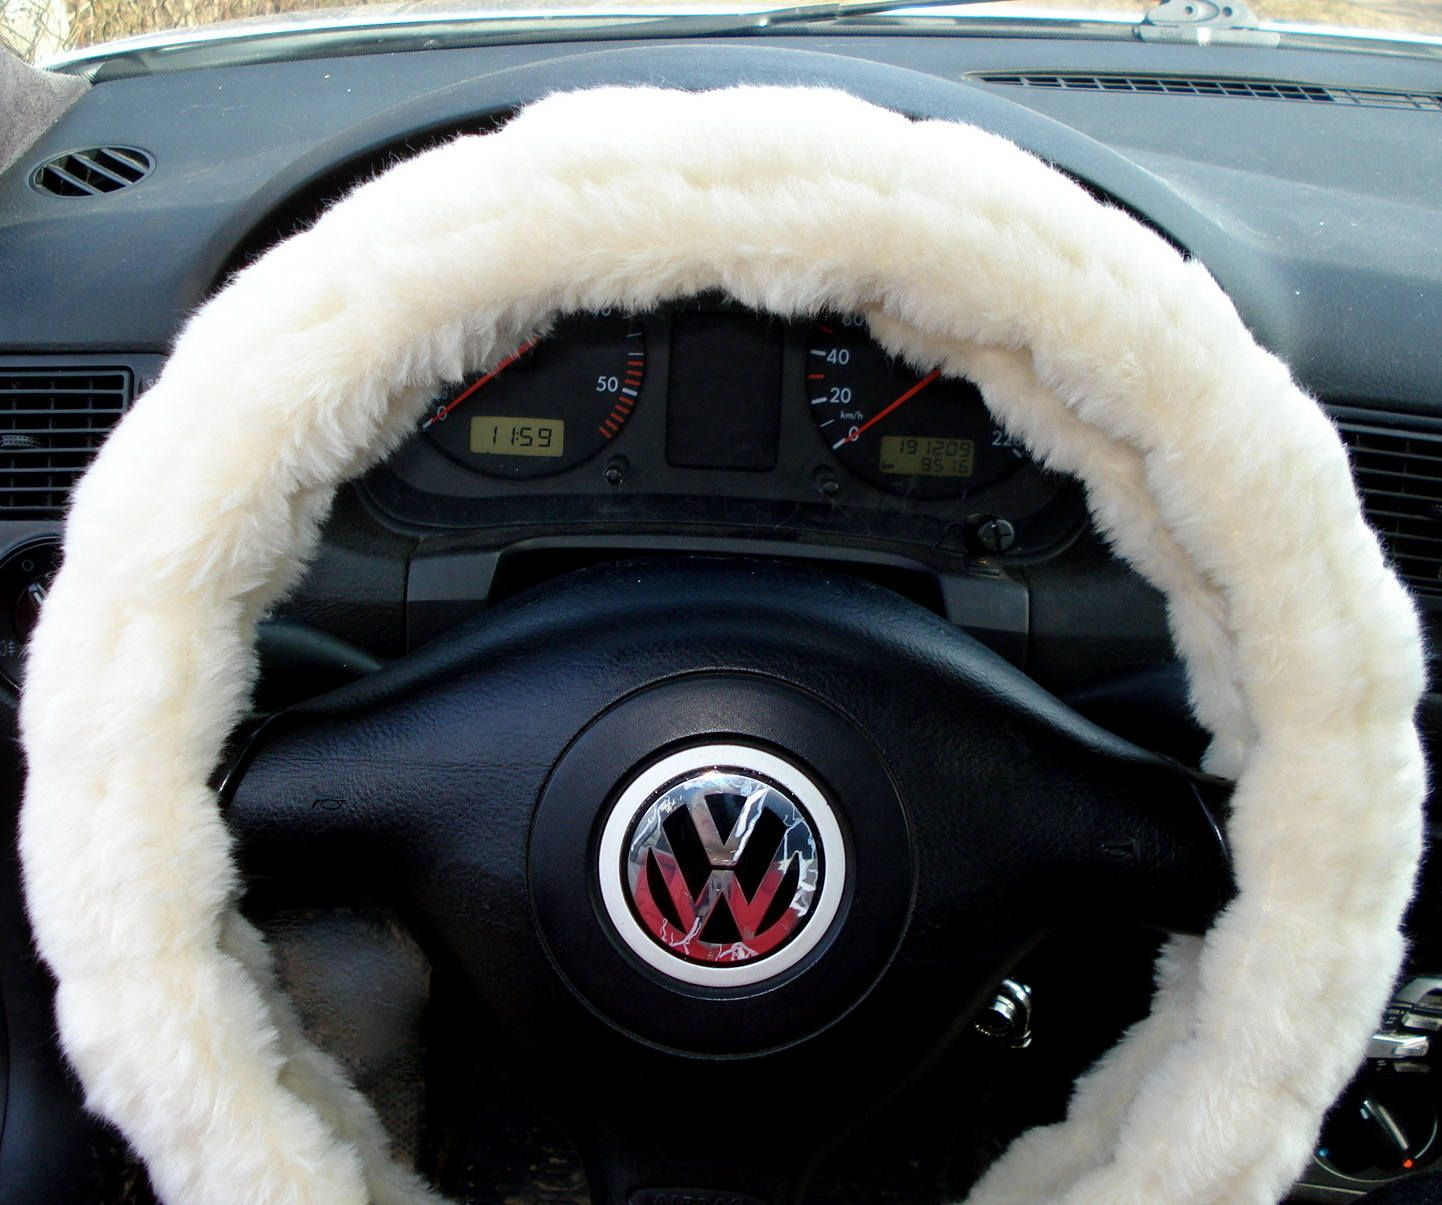 fuzzy car accessories, steering wheel cover, gear shift knob cover